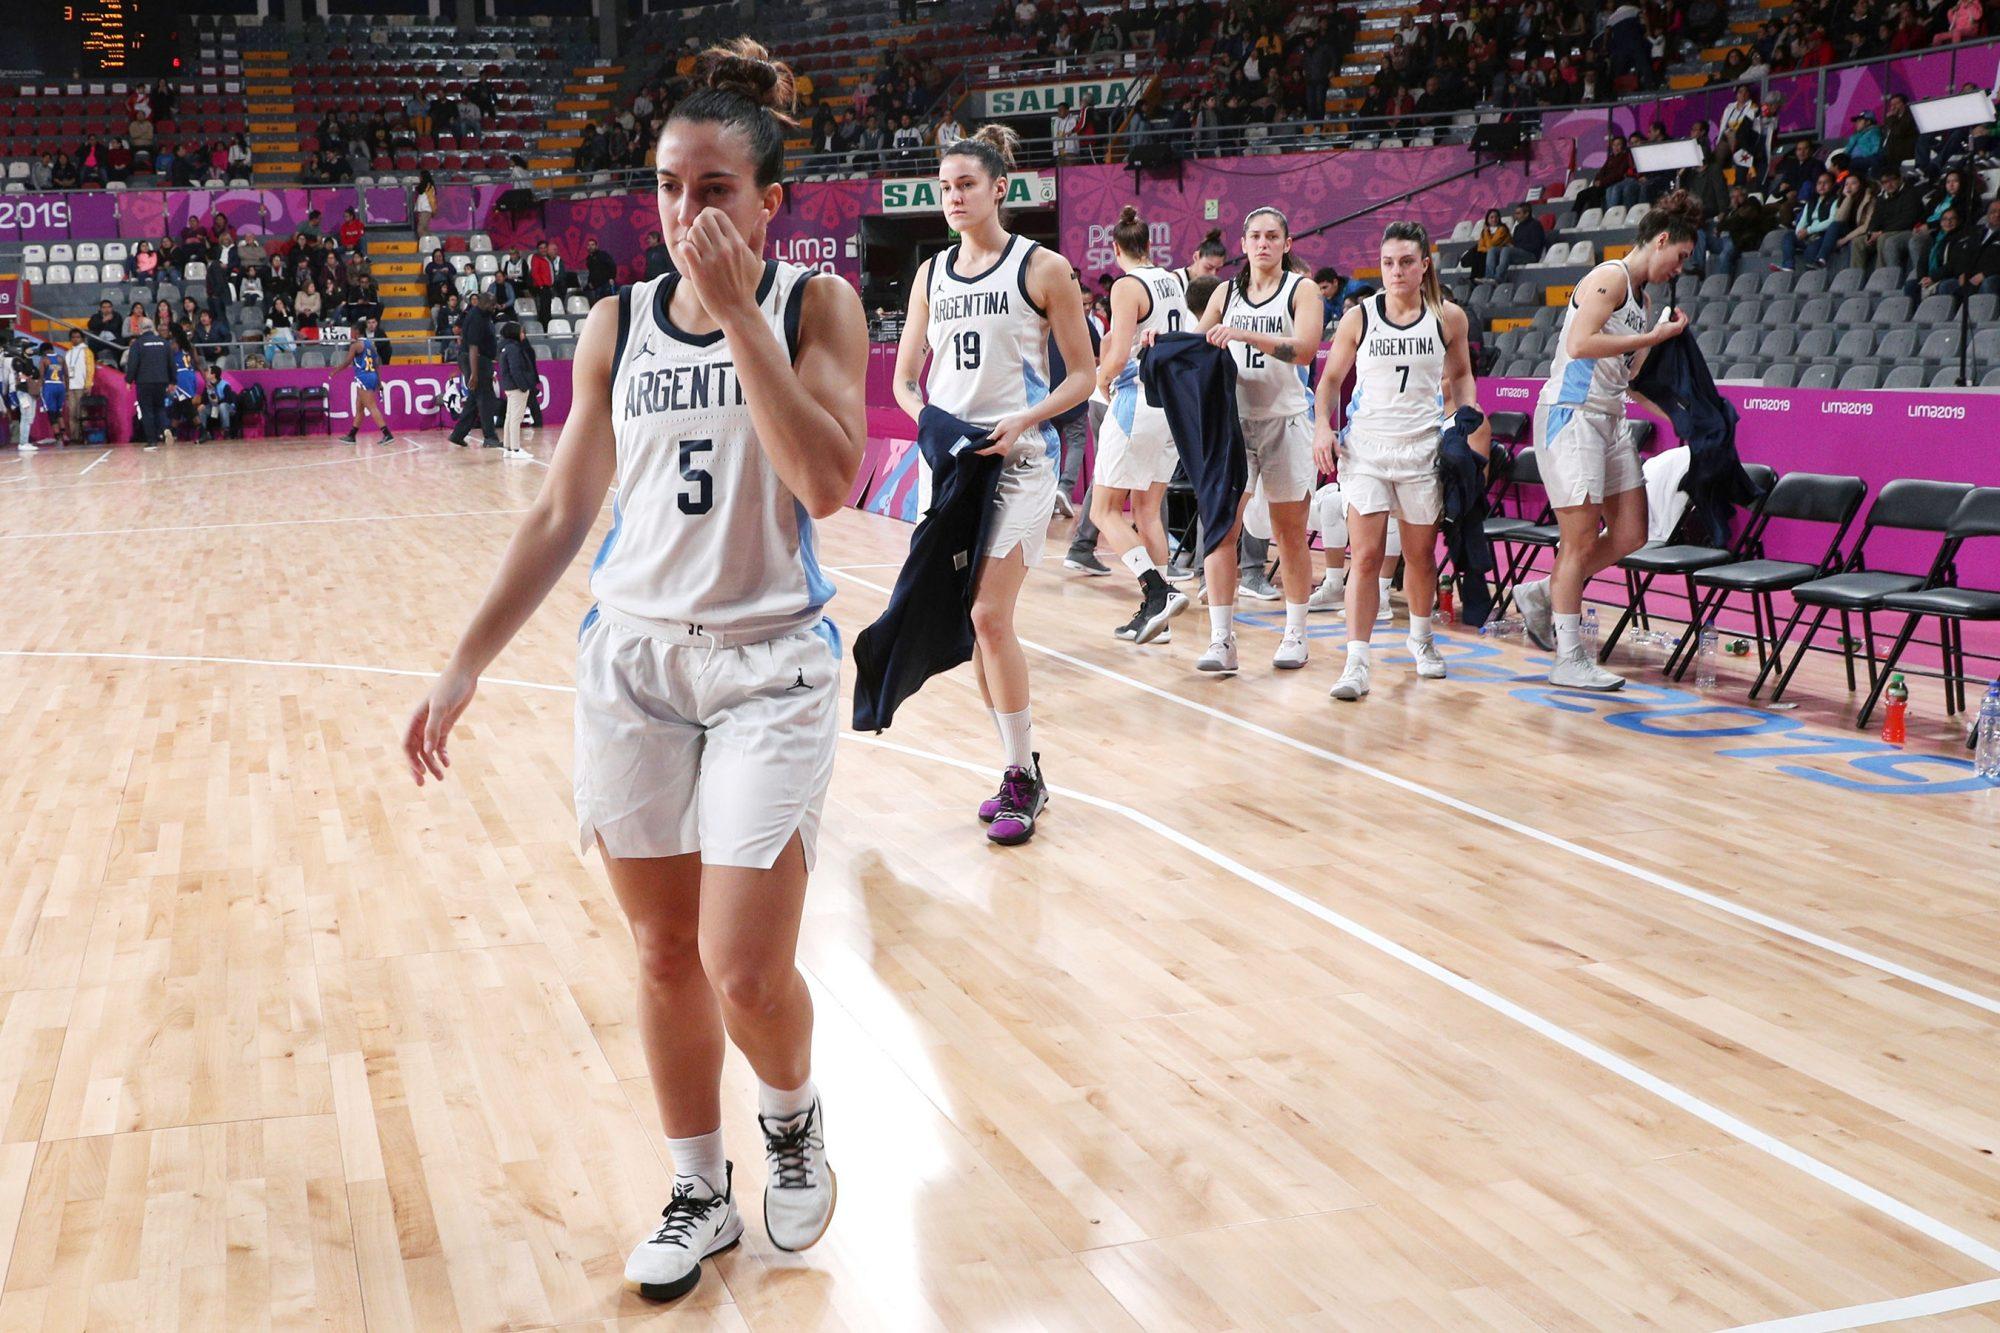 Players of Argentina leaves the court at the end of the first half during the women's basketball match against the Virgin Islands at the Pan American Games in Lima, Peru, Thursday, Aug. 8, 2019.